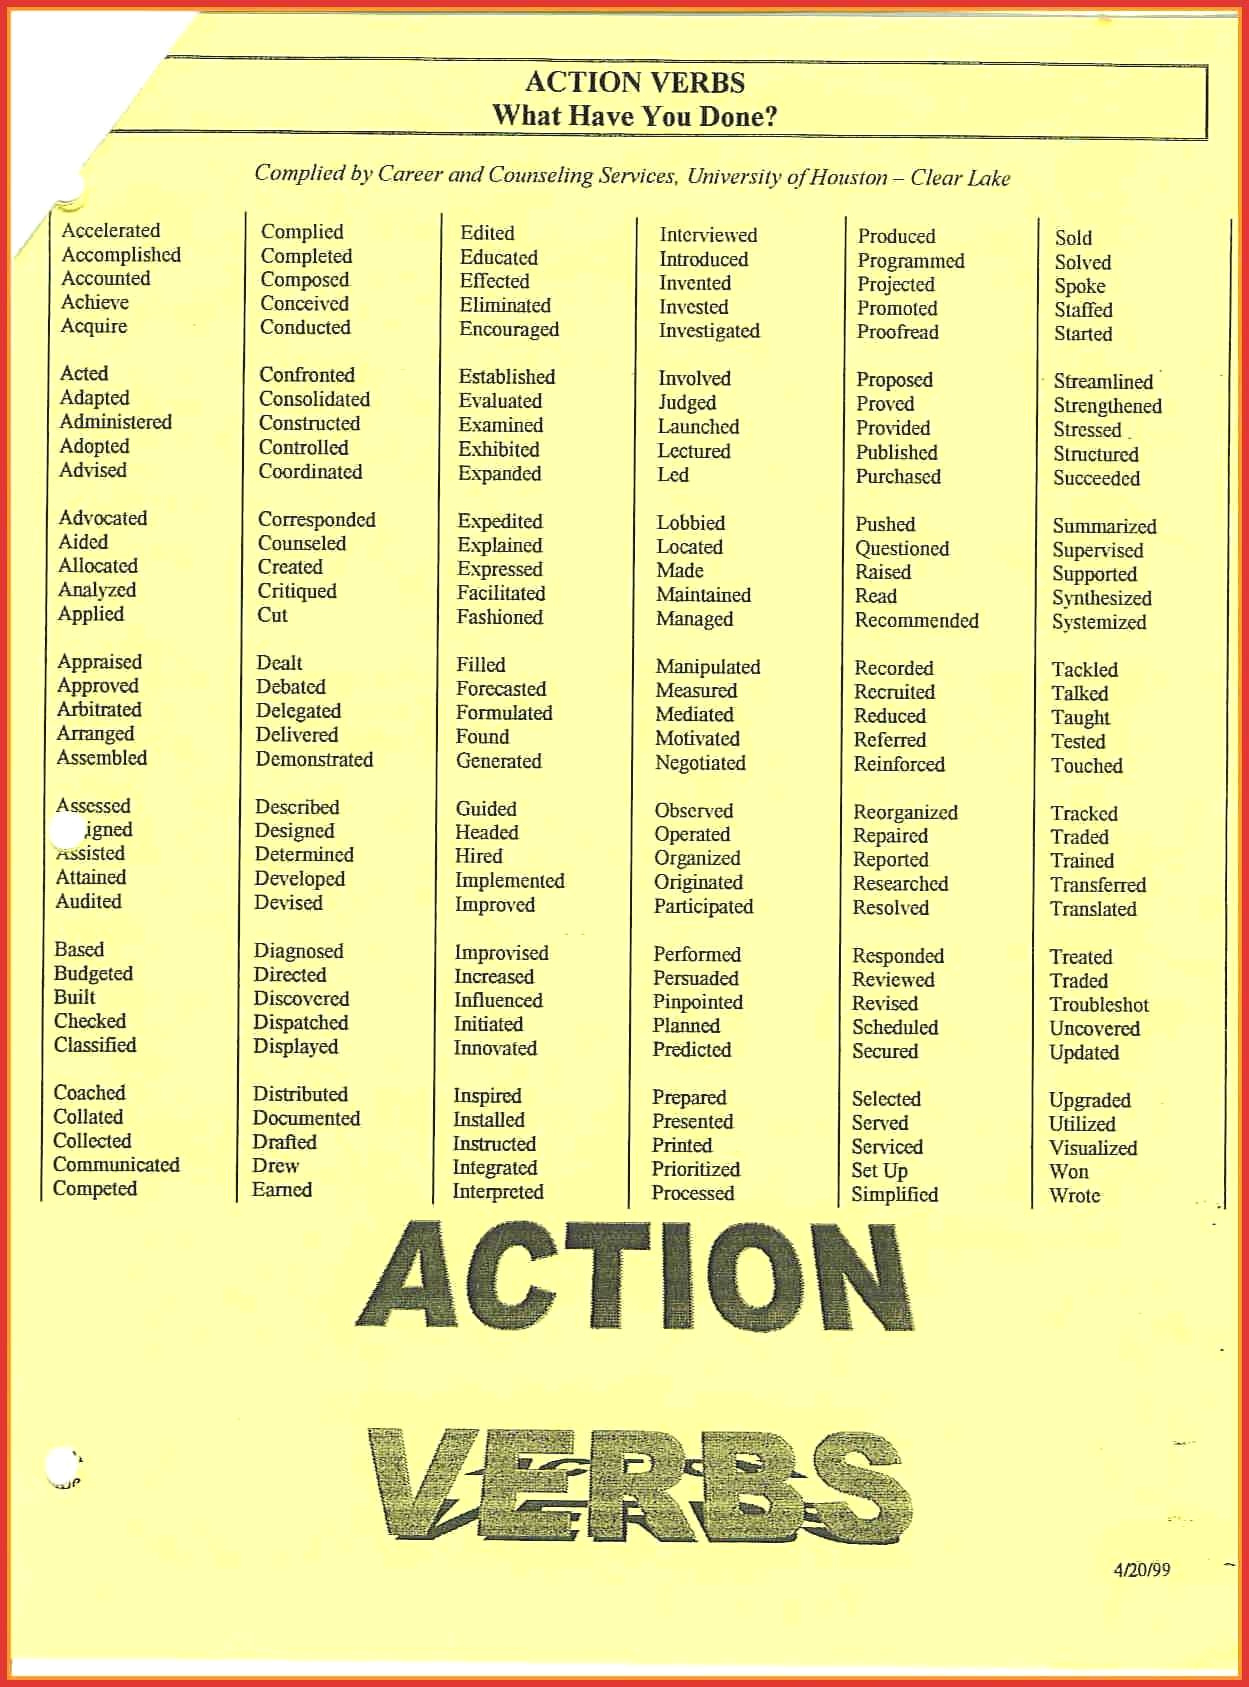 Action Verbs for Resume - 49 Unbelievable Action Words for Resume